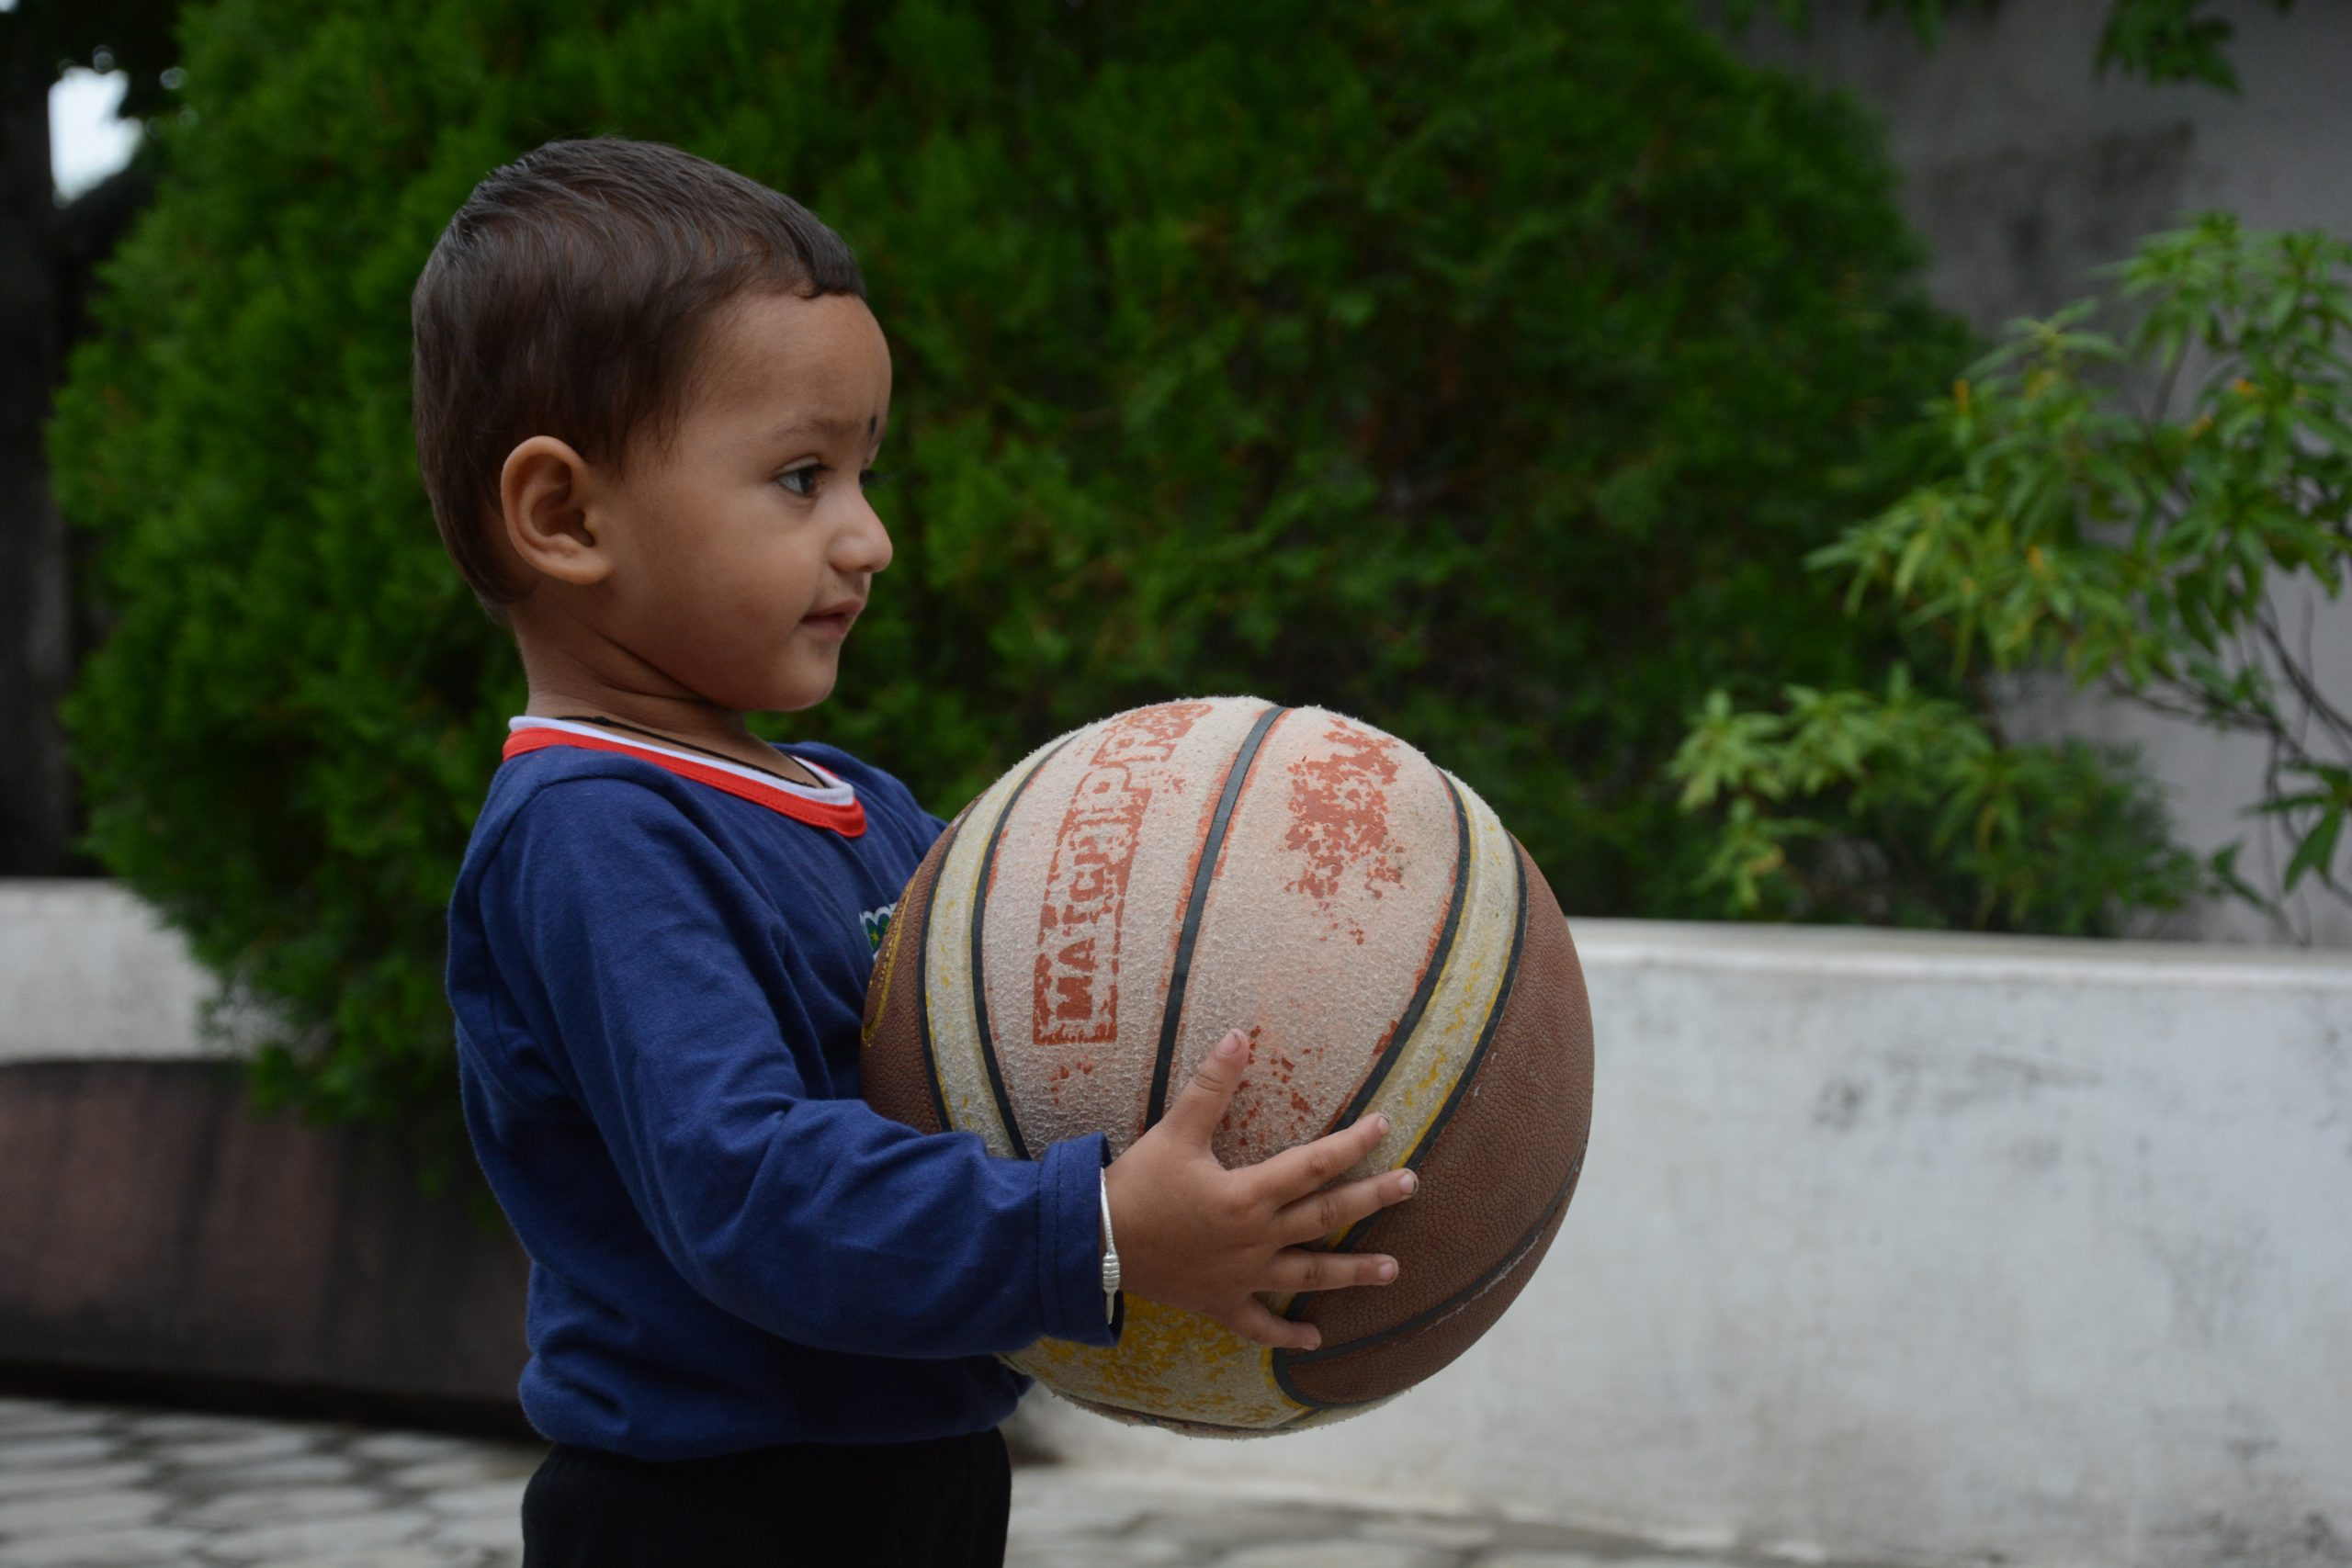 Child Holding a Ball